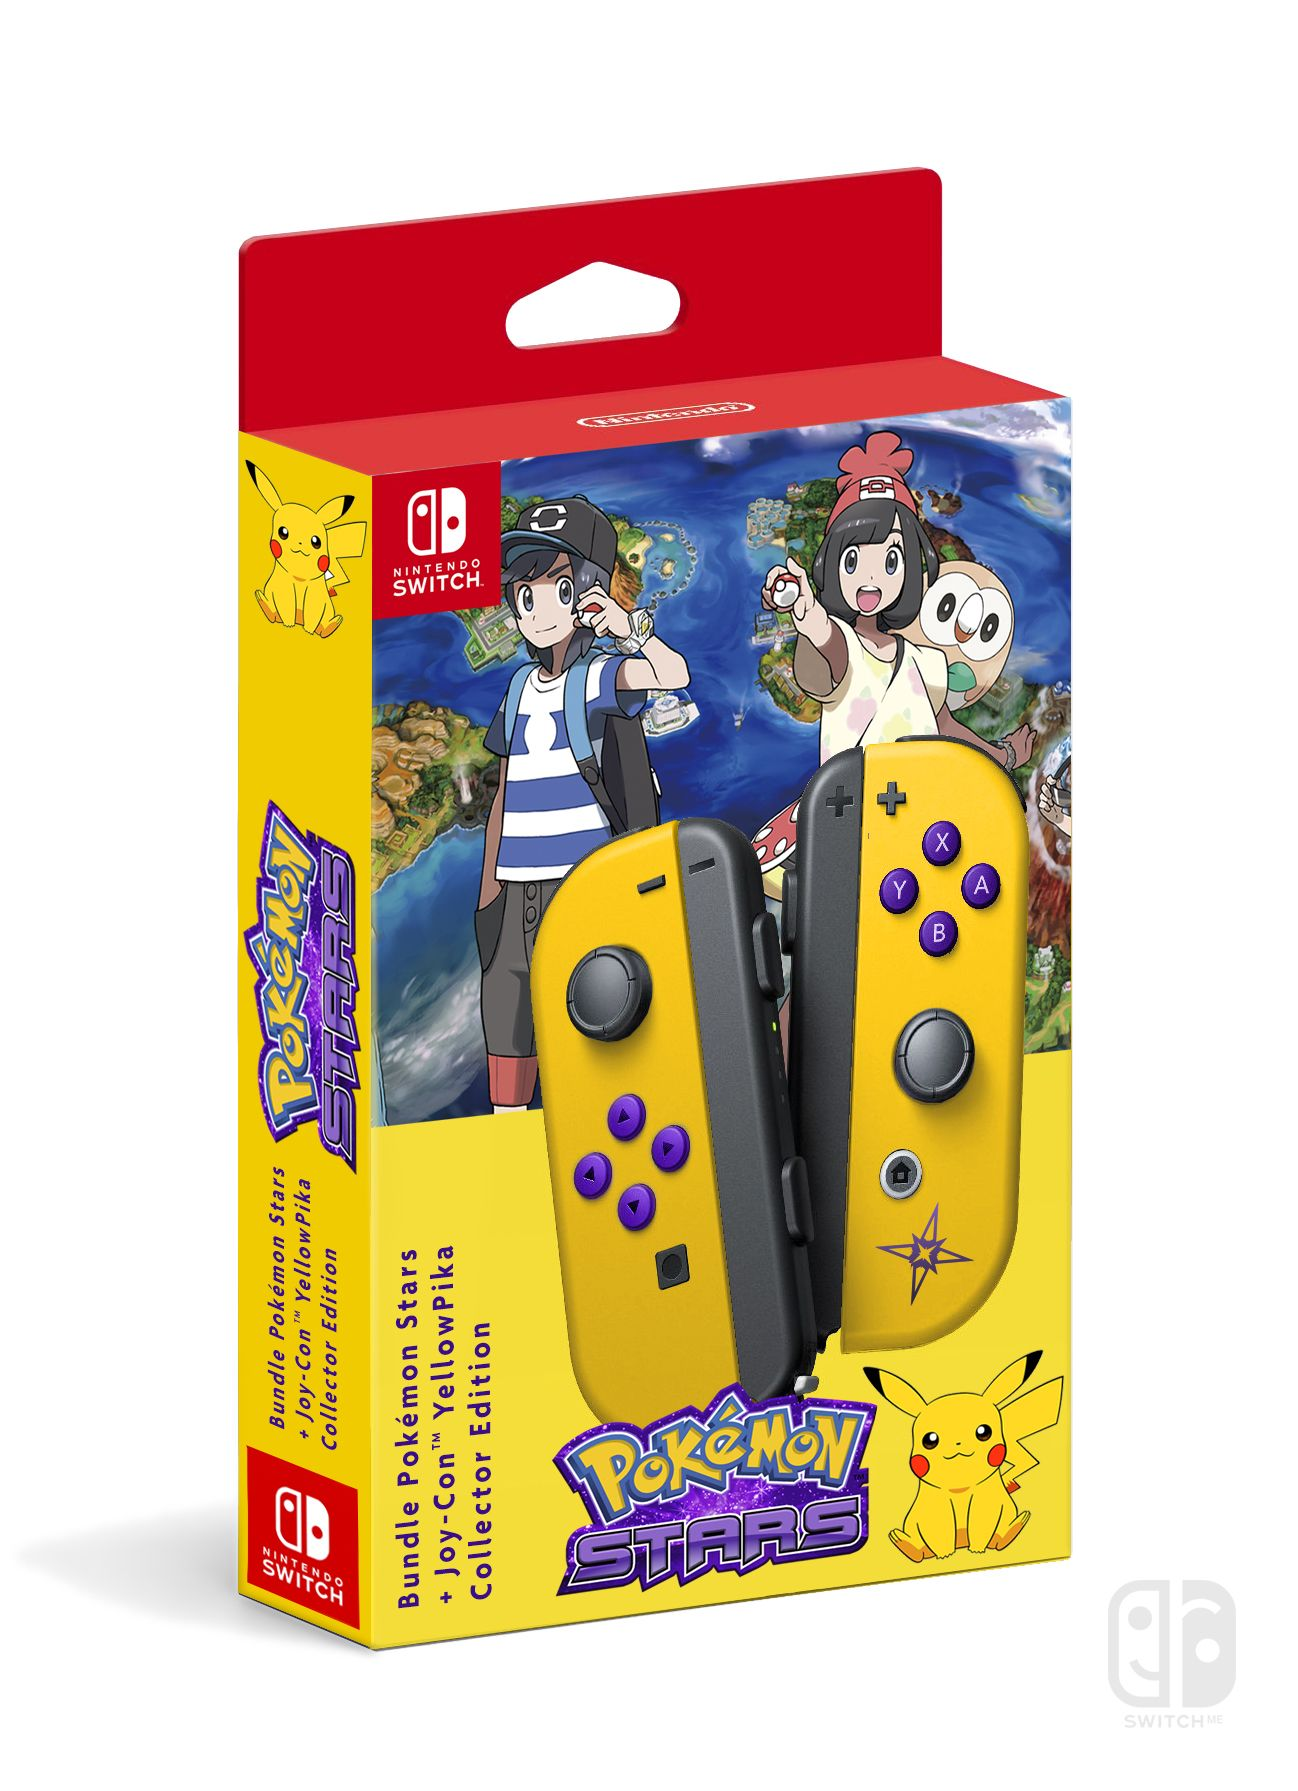 Bundle pokémon stars nintendo joy con collector nintendo switch a switch me fan art if u like it follow me on twitter switchmelike joycon